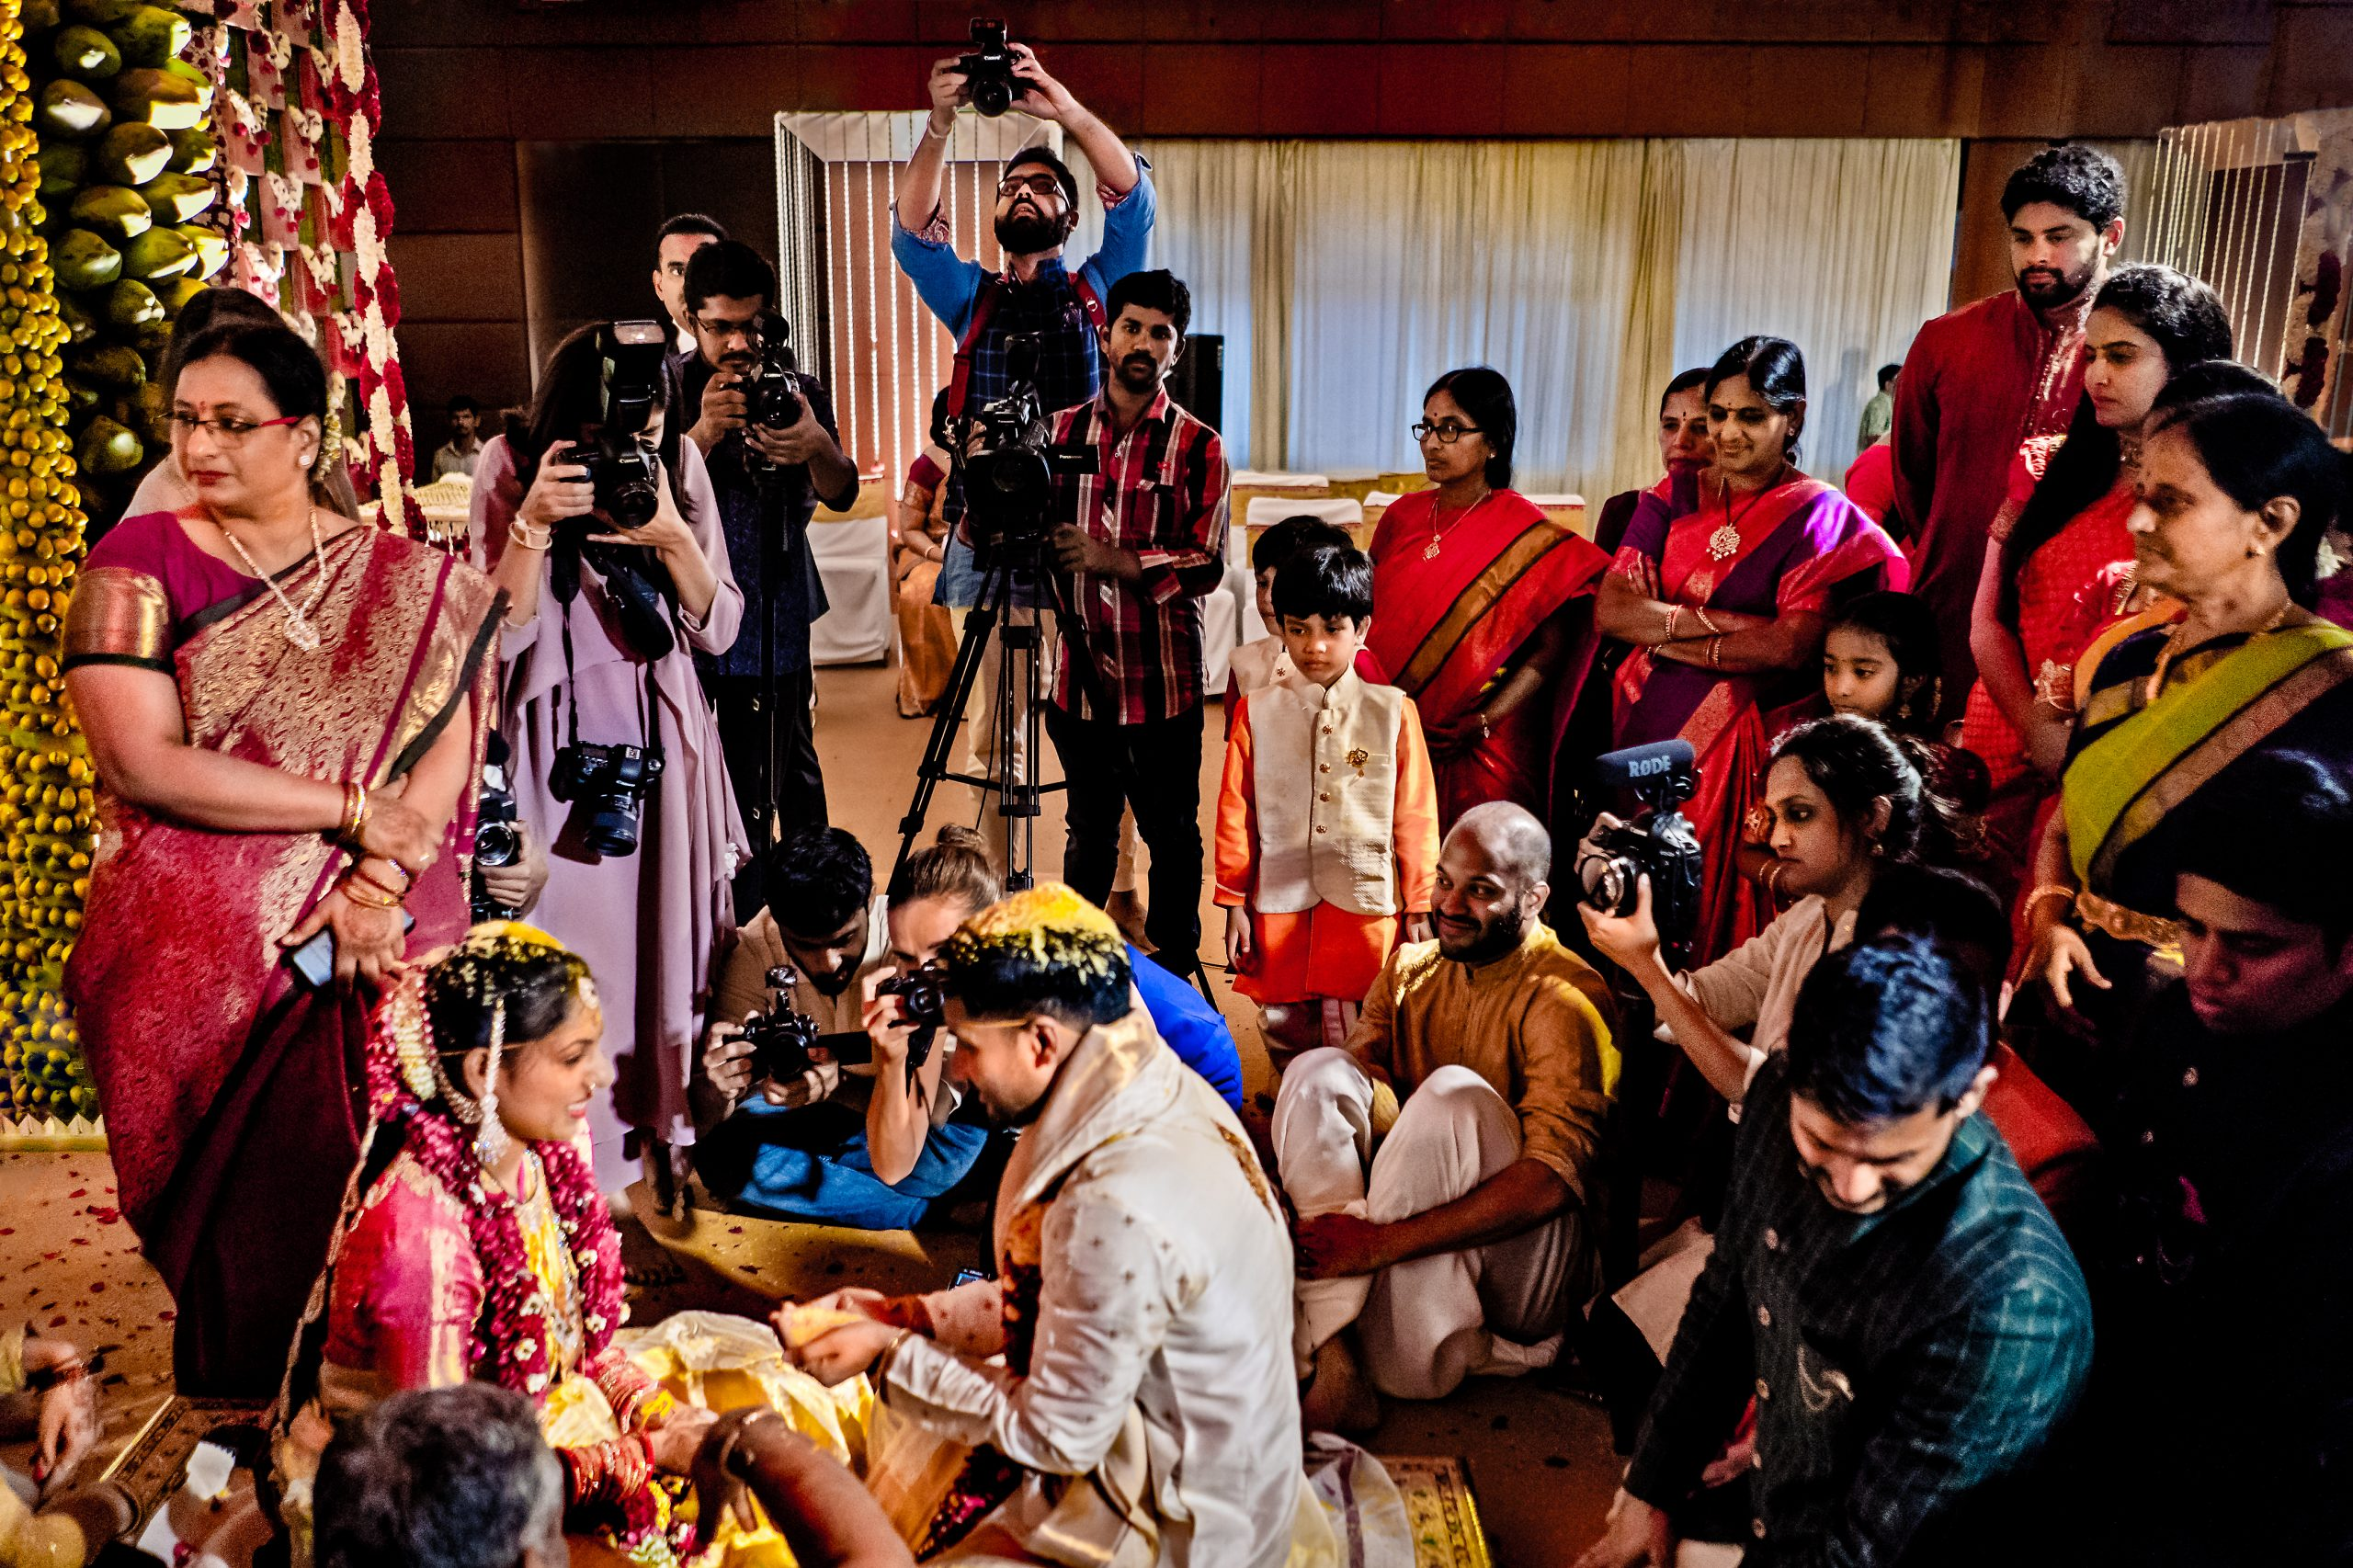 Friends and family with photographer photography Indian wedding ceremony